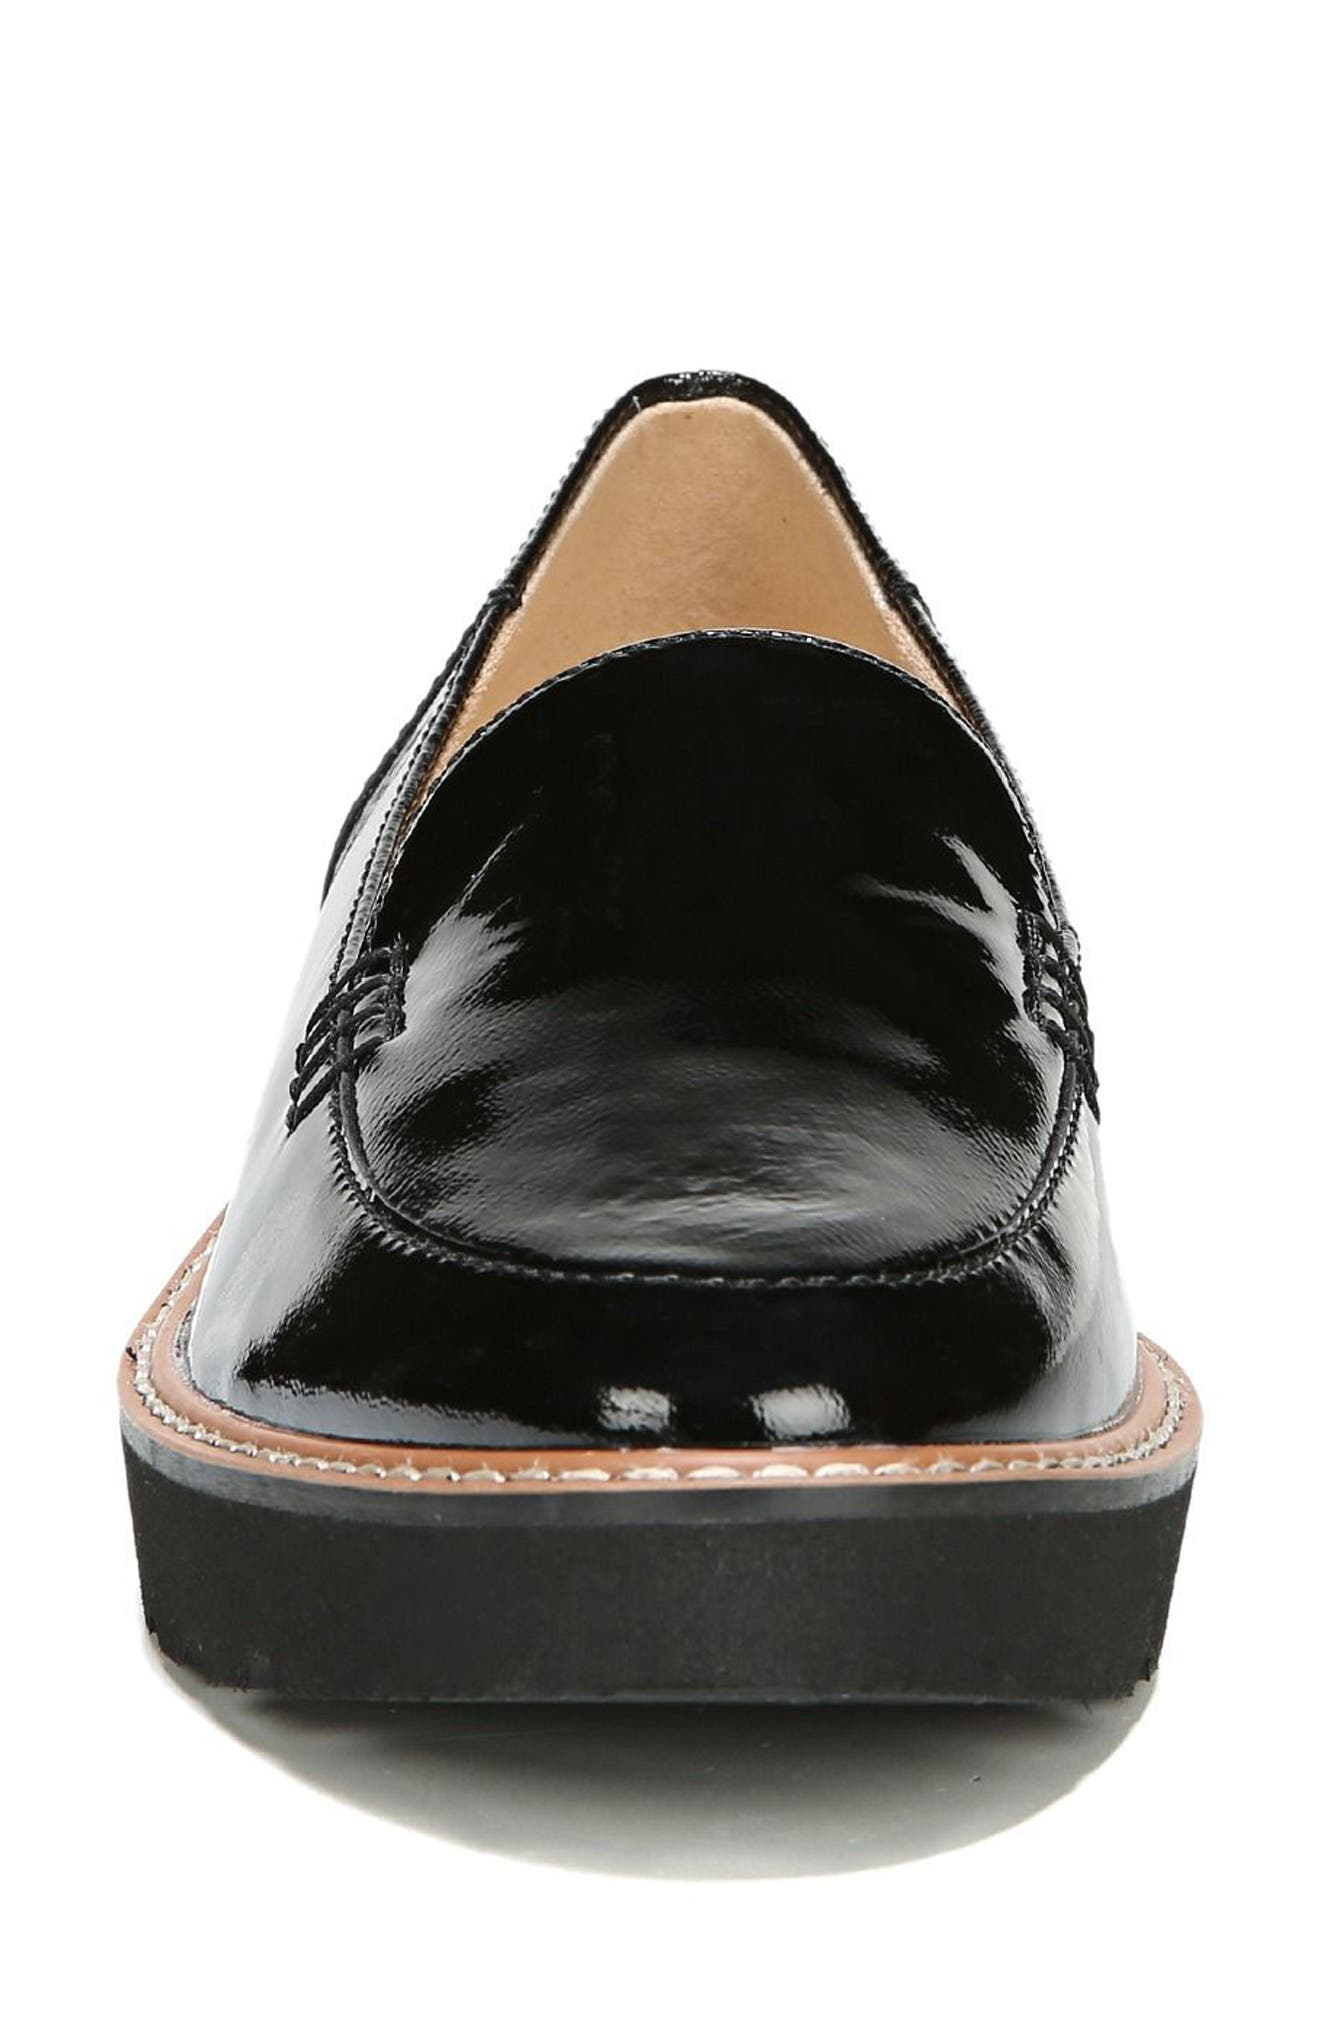 Andie Loafer,                             Alternate thumbnail 4, color,                             BLACK PATENT